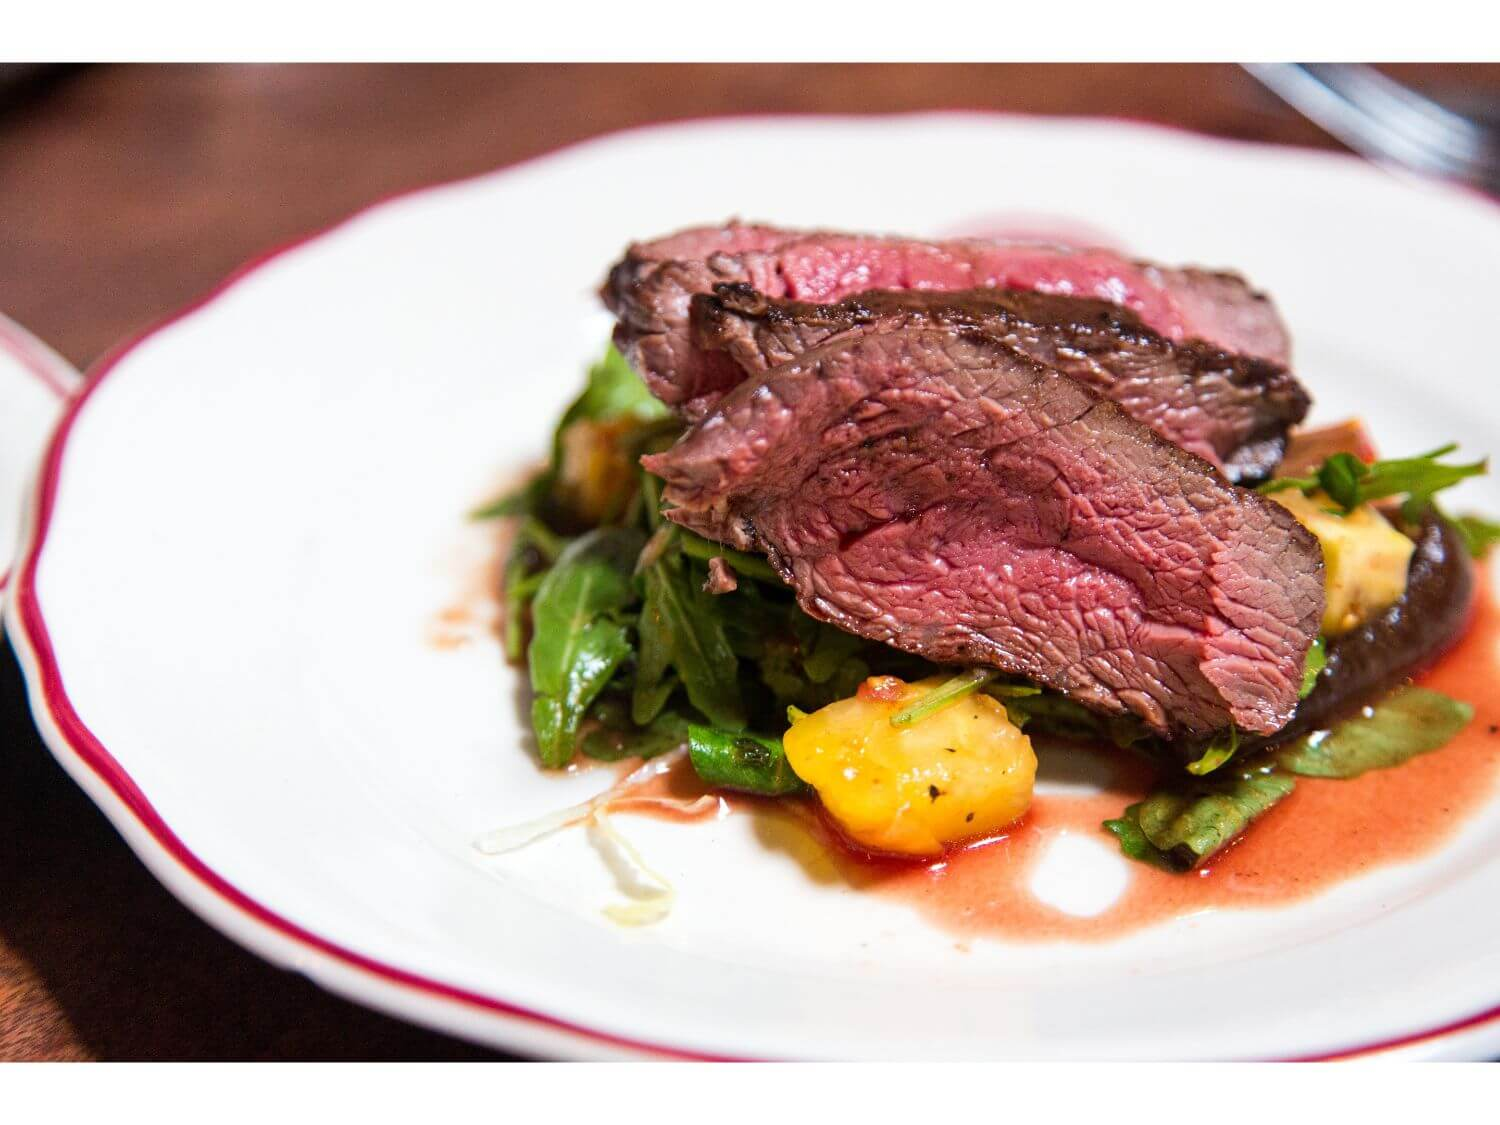 Red meat: Should you eat or avoid it?